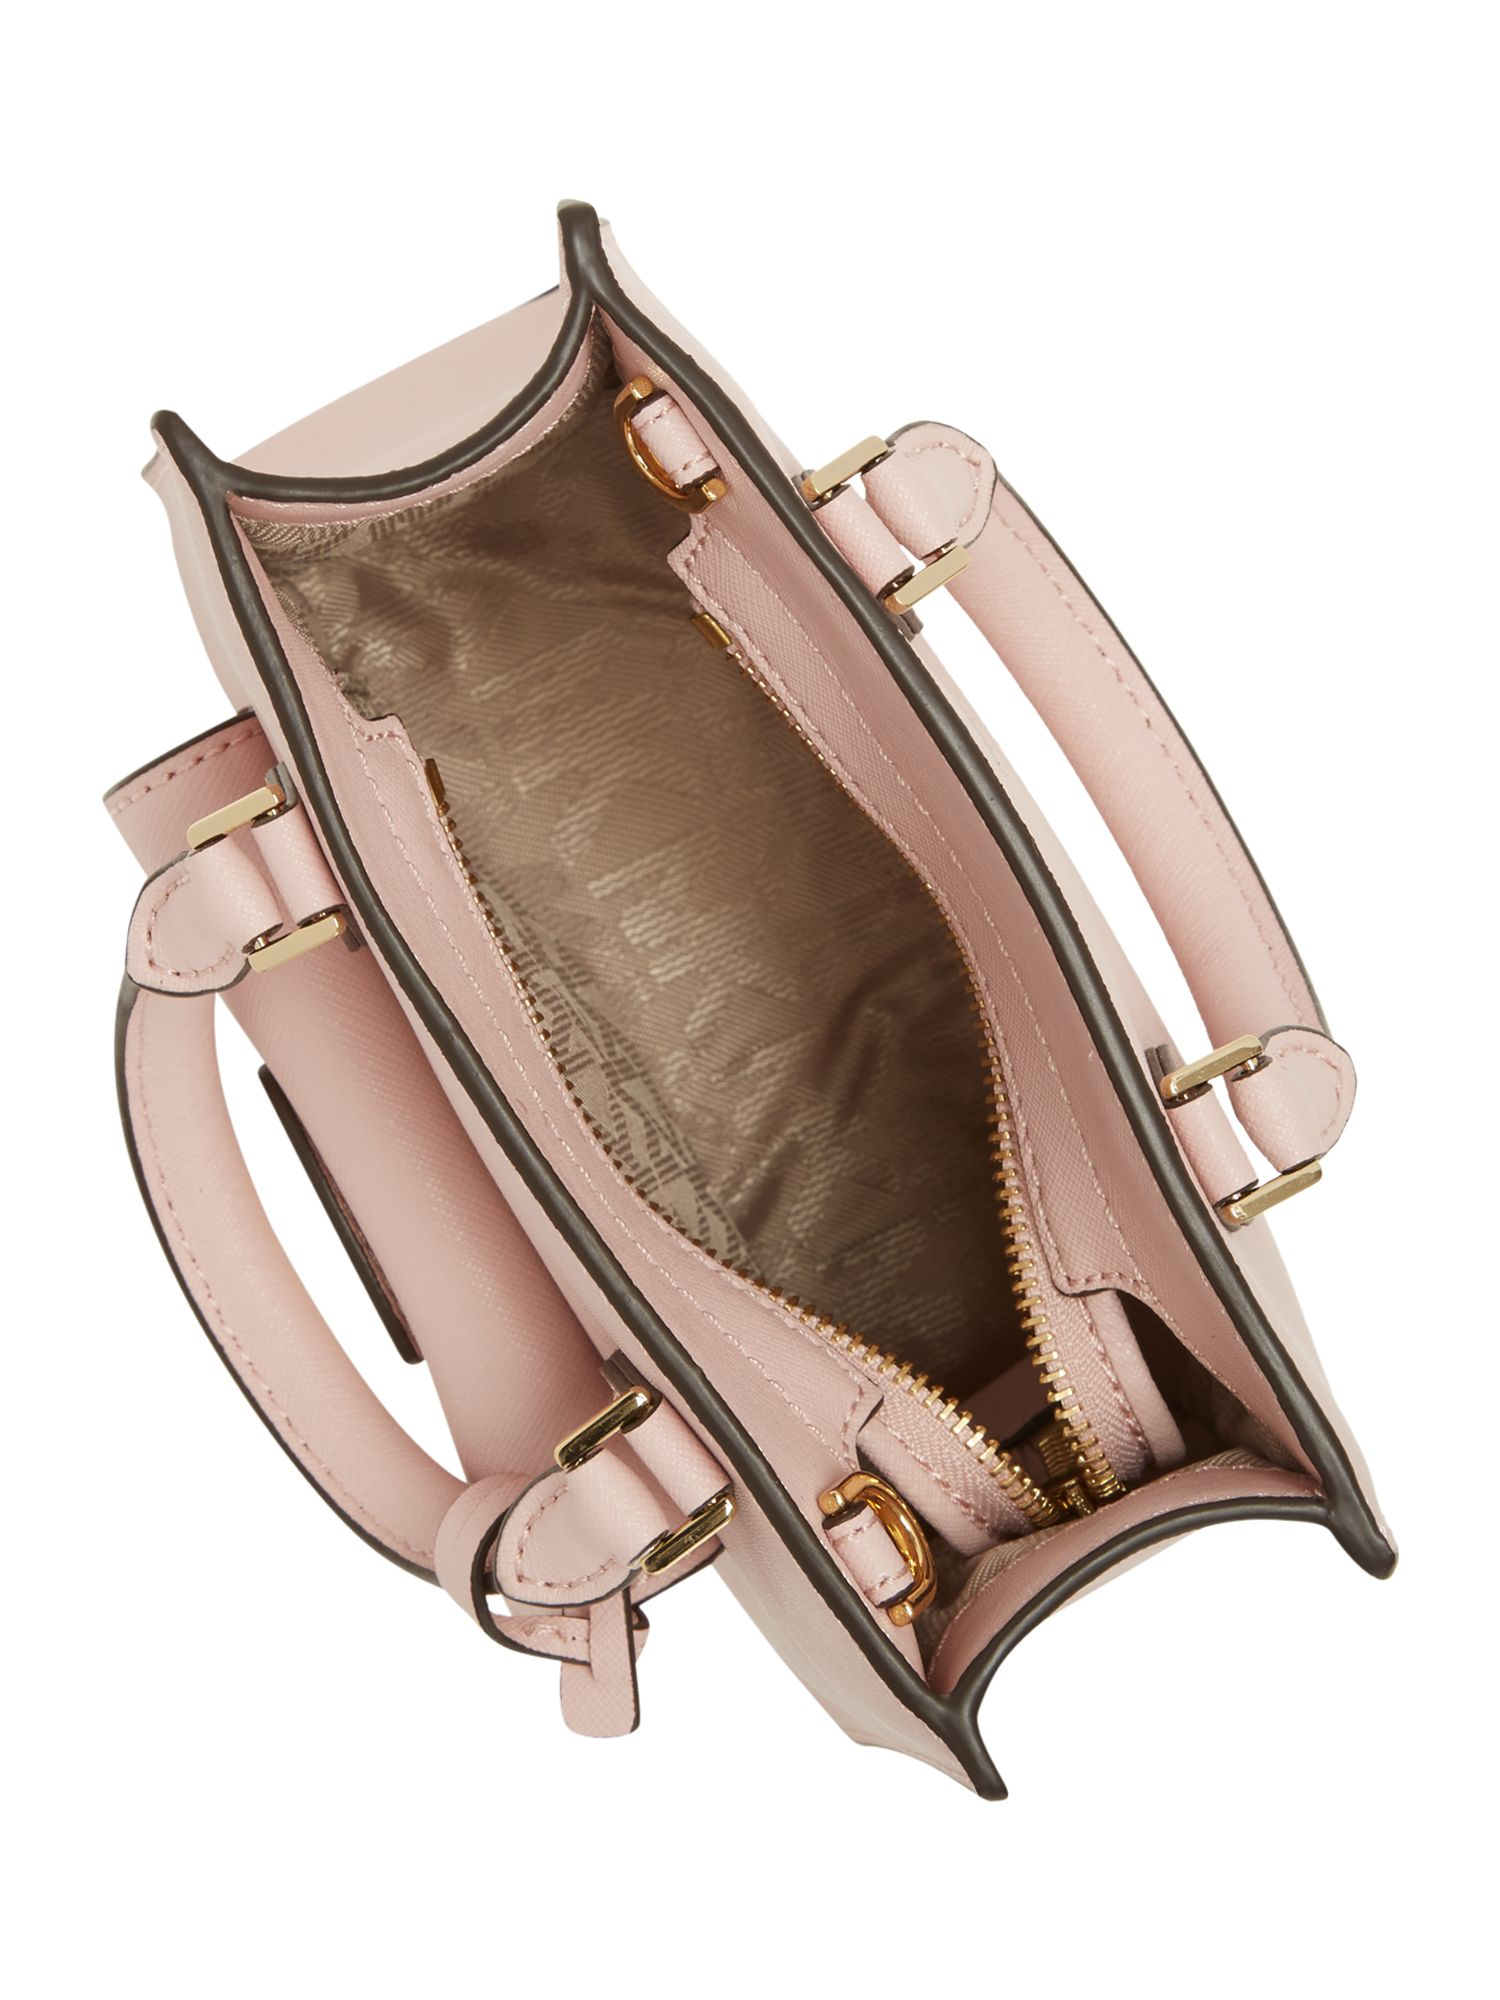 Michael Kors Leather Bridgette Pink Small Cross Body Bag